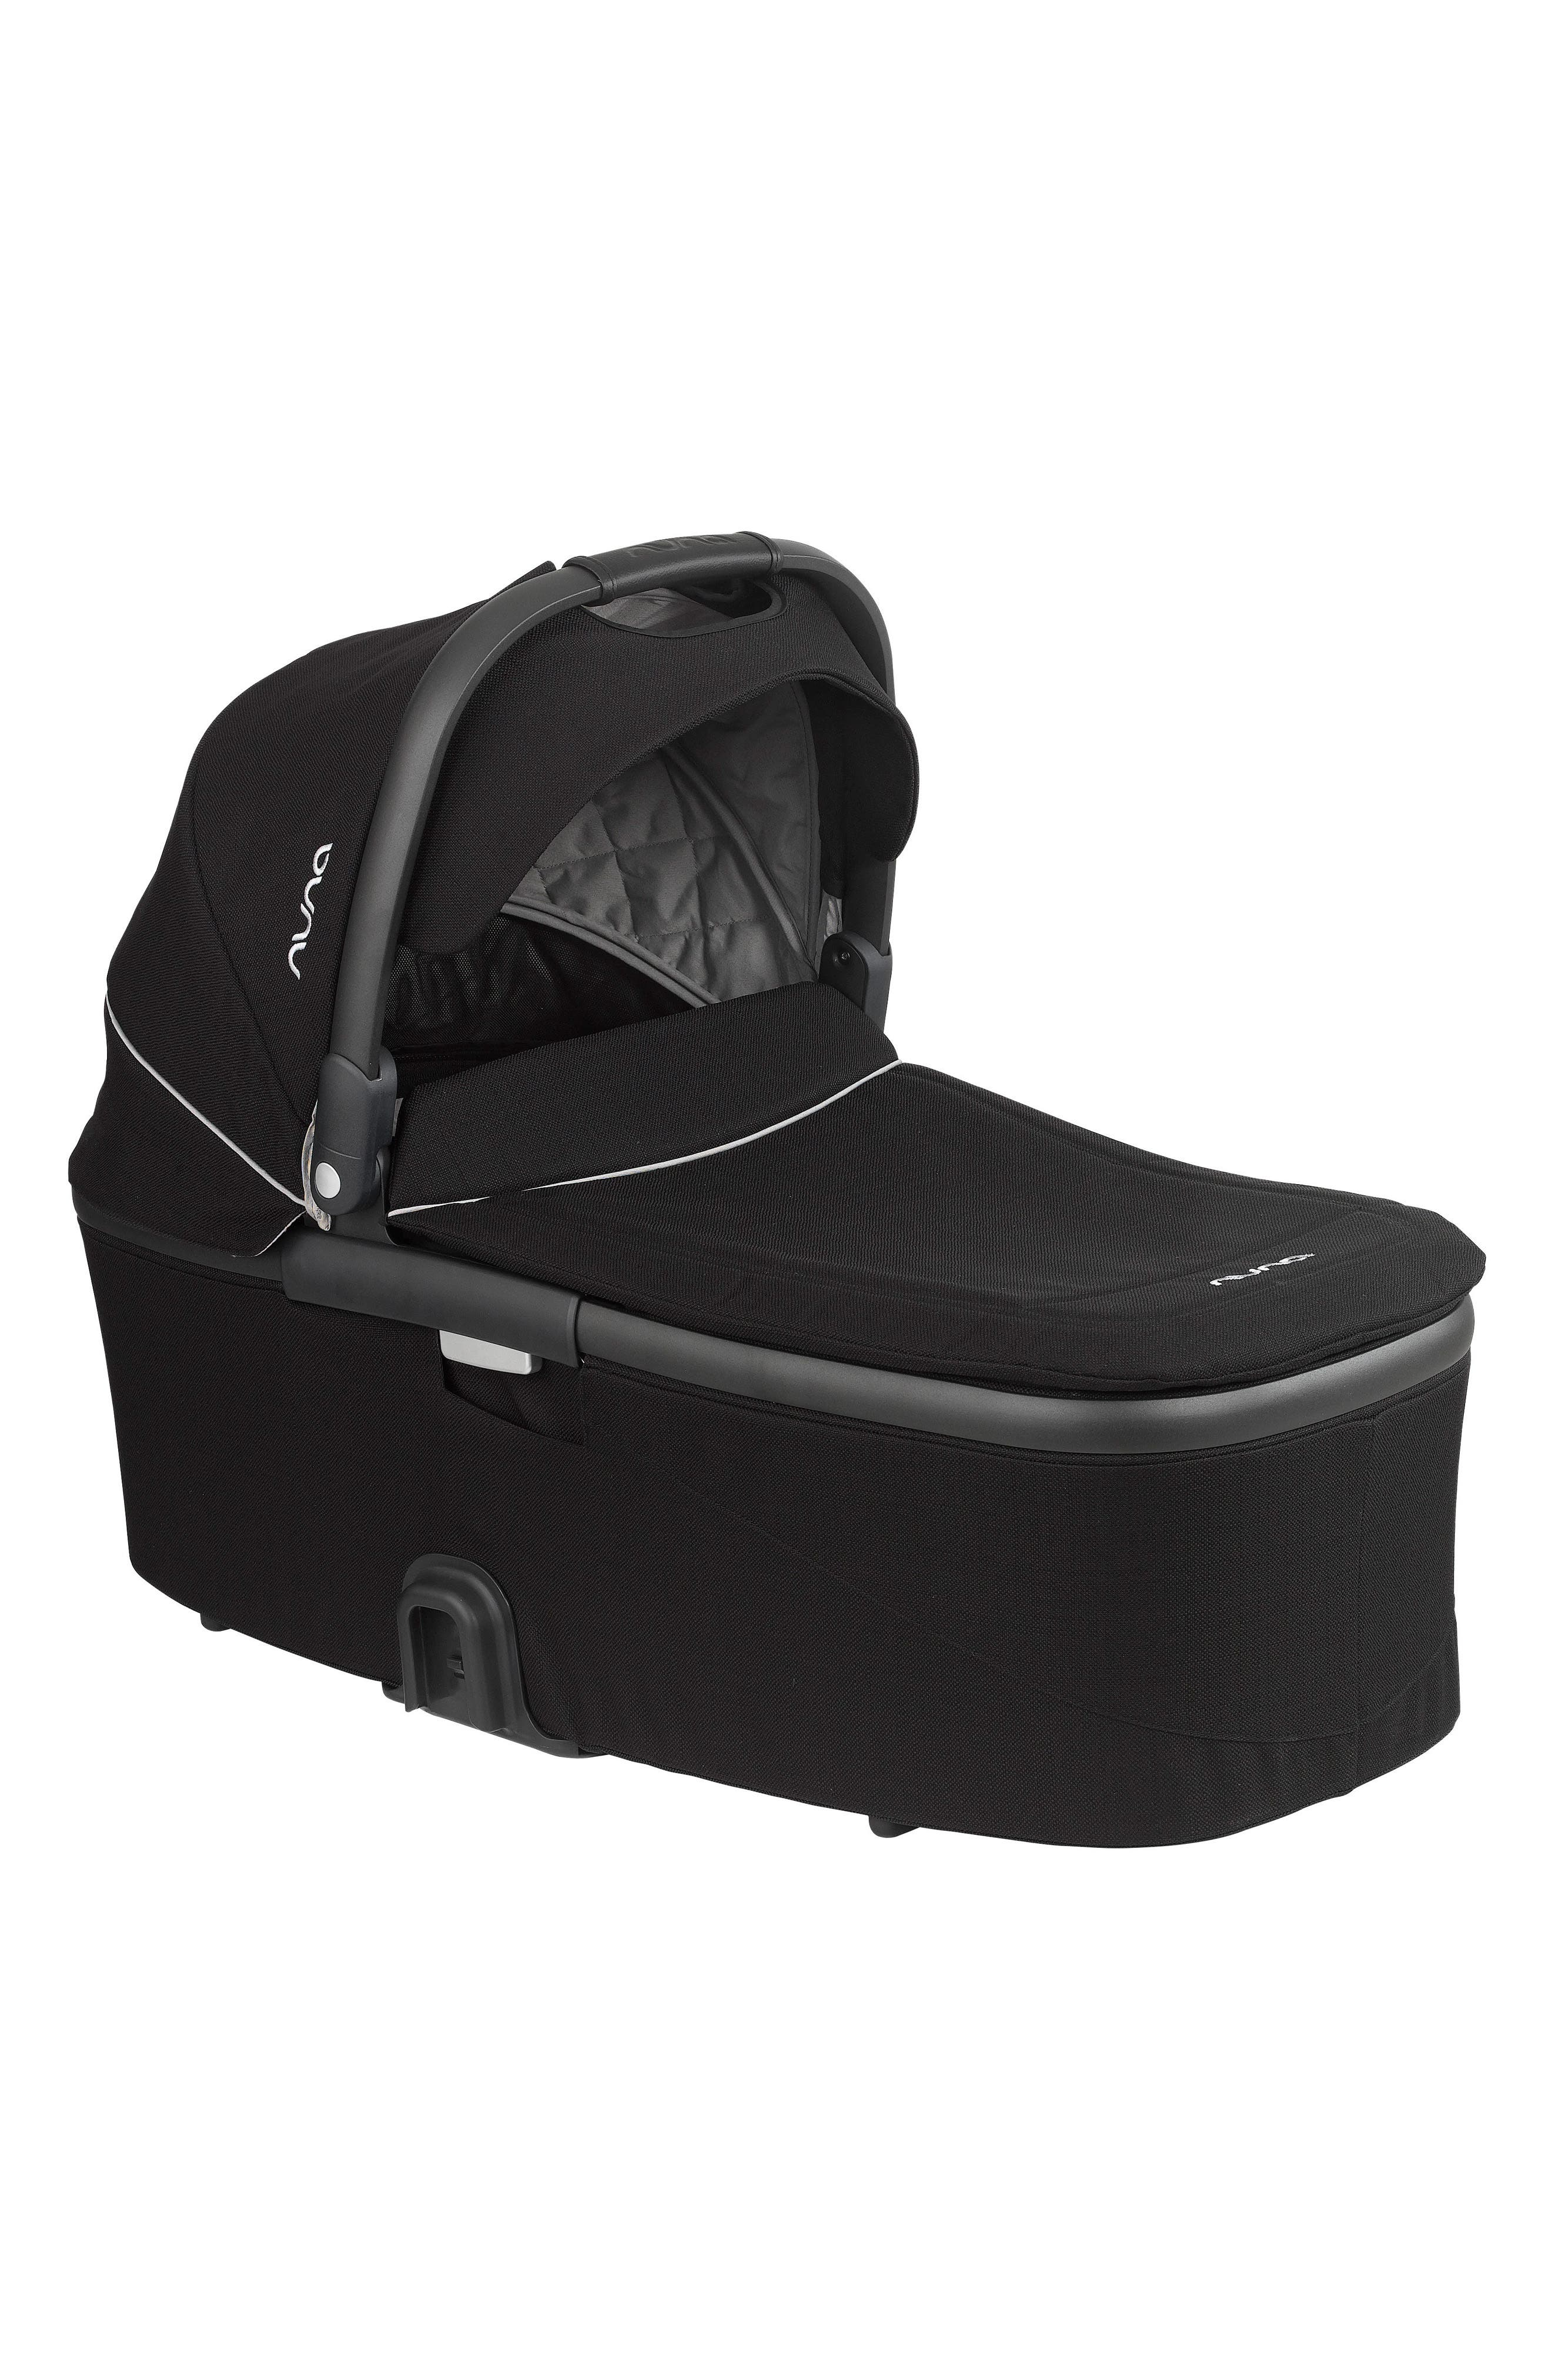 NUNA,                             MIXX Bassinet for nuna MIXX Stroller,                             Main thumbnail 1, color,                             CAVIAR